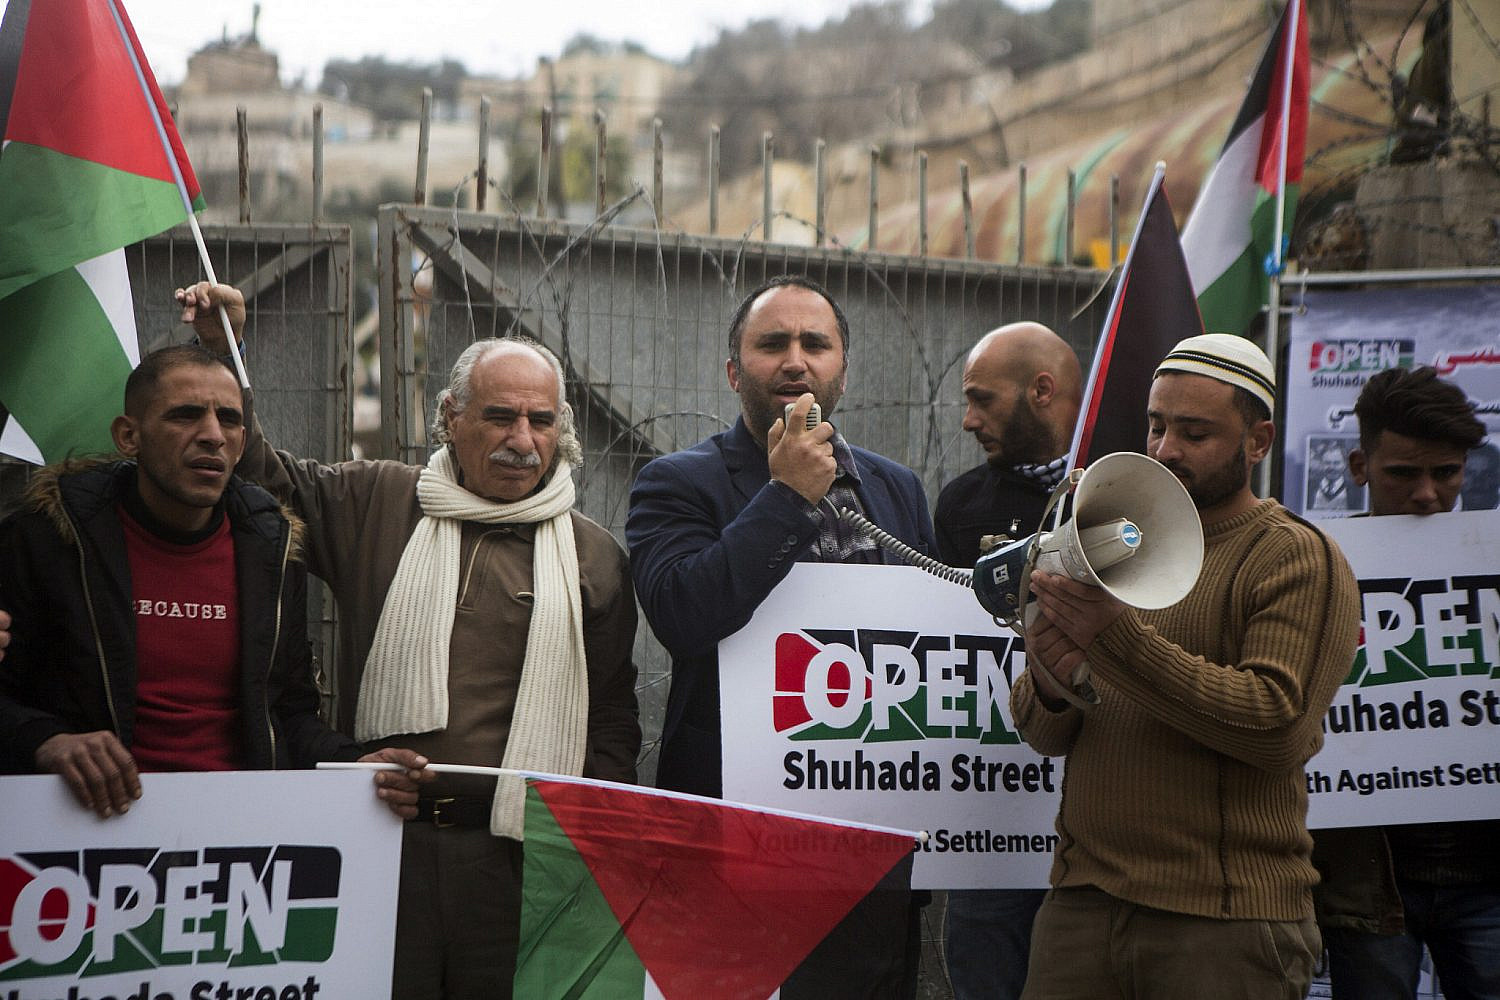 Issa Amro gives a speech during a demonstration commemorating the 1994 Ibrahimi Mosque massacre and calling for the opening of Shuhada Street, Hebron, West Bank, February 20, 2019. (Activestills)